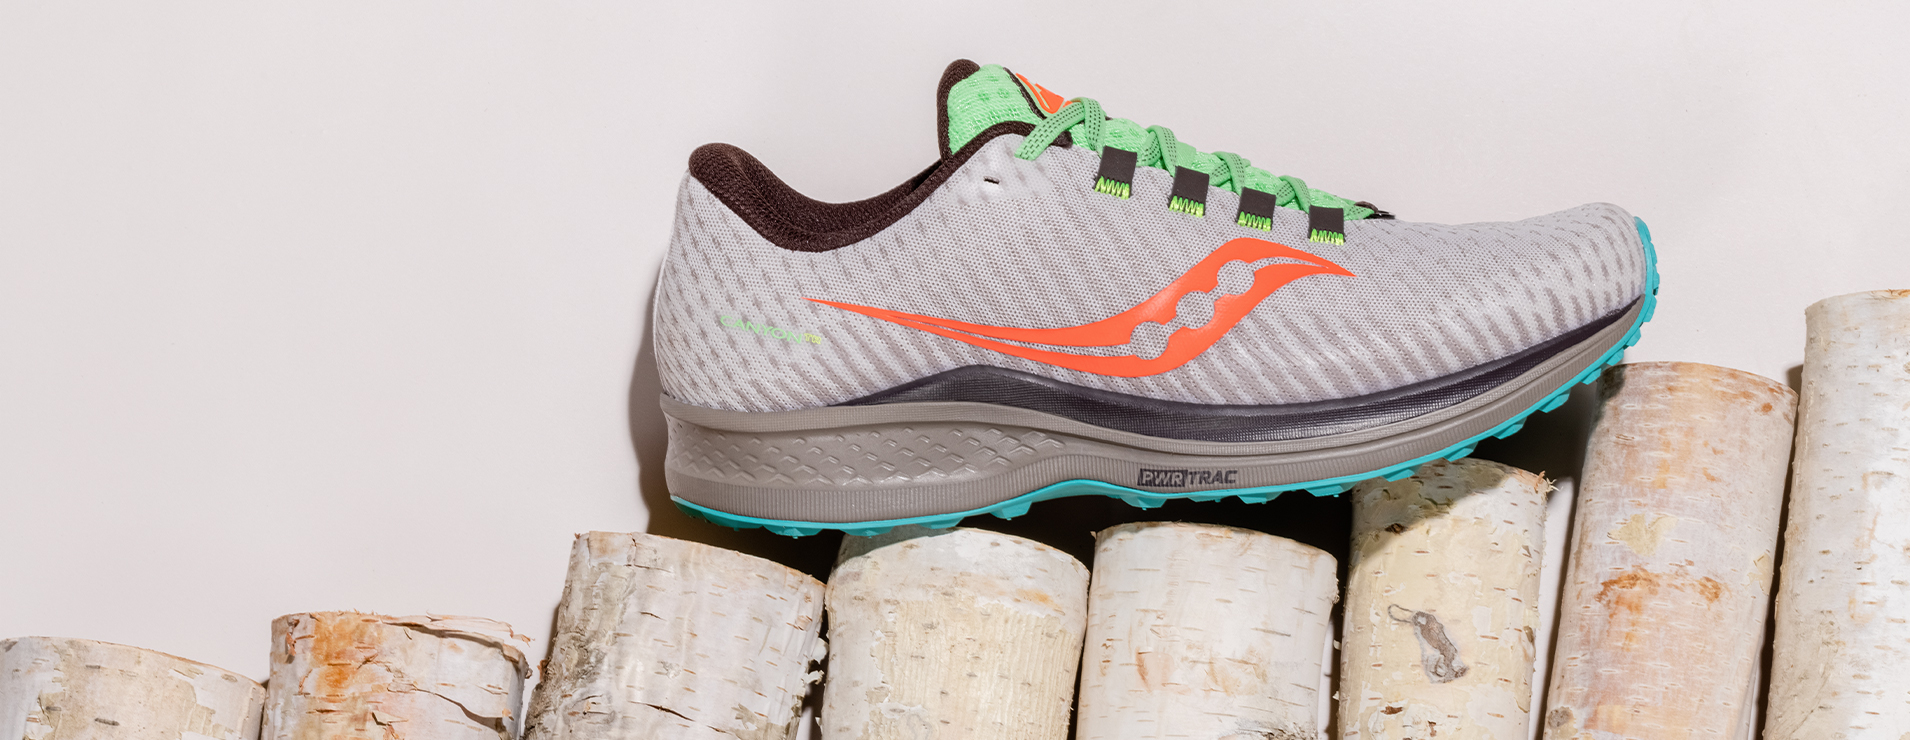 Saucony Canyon TR shoe on birch logs.